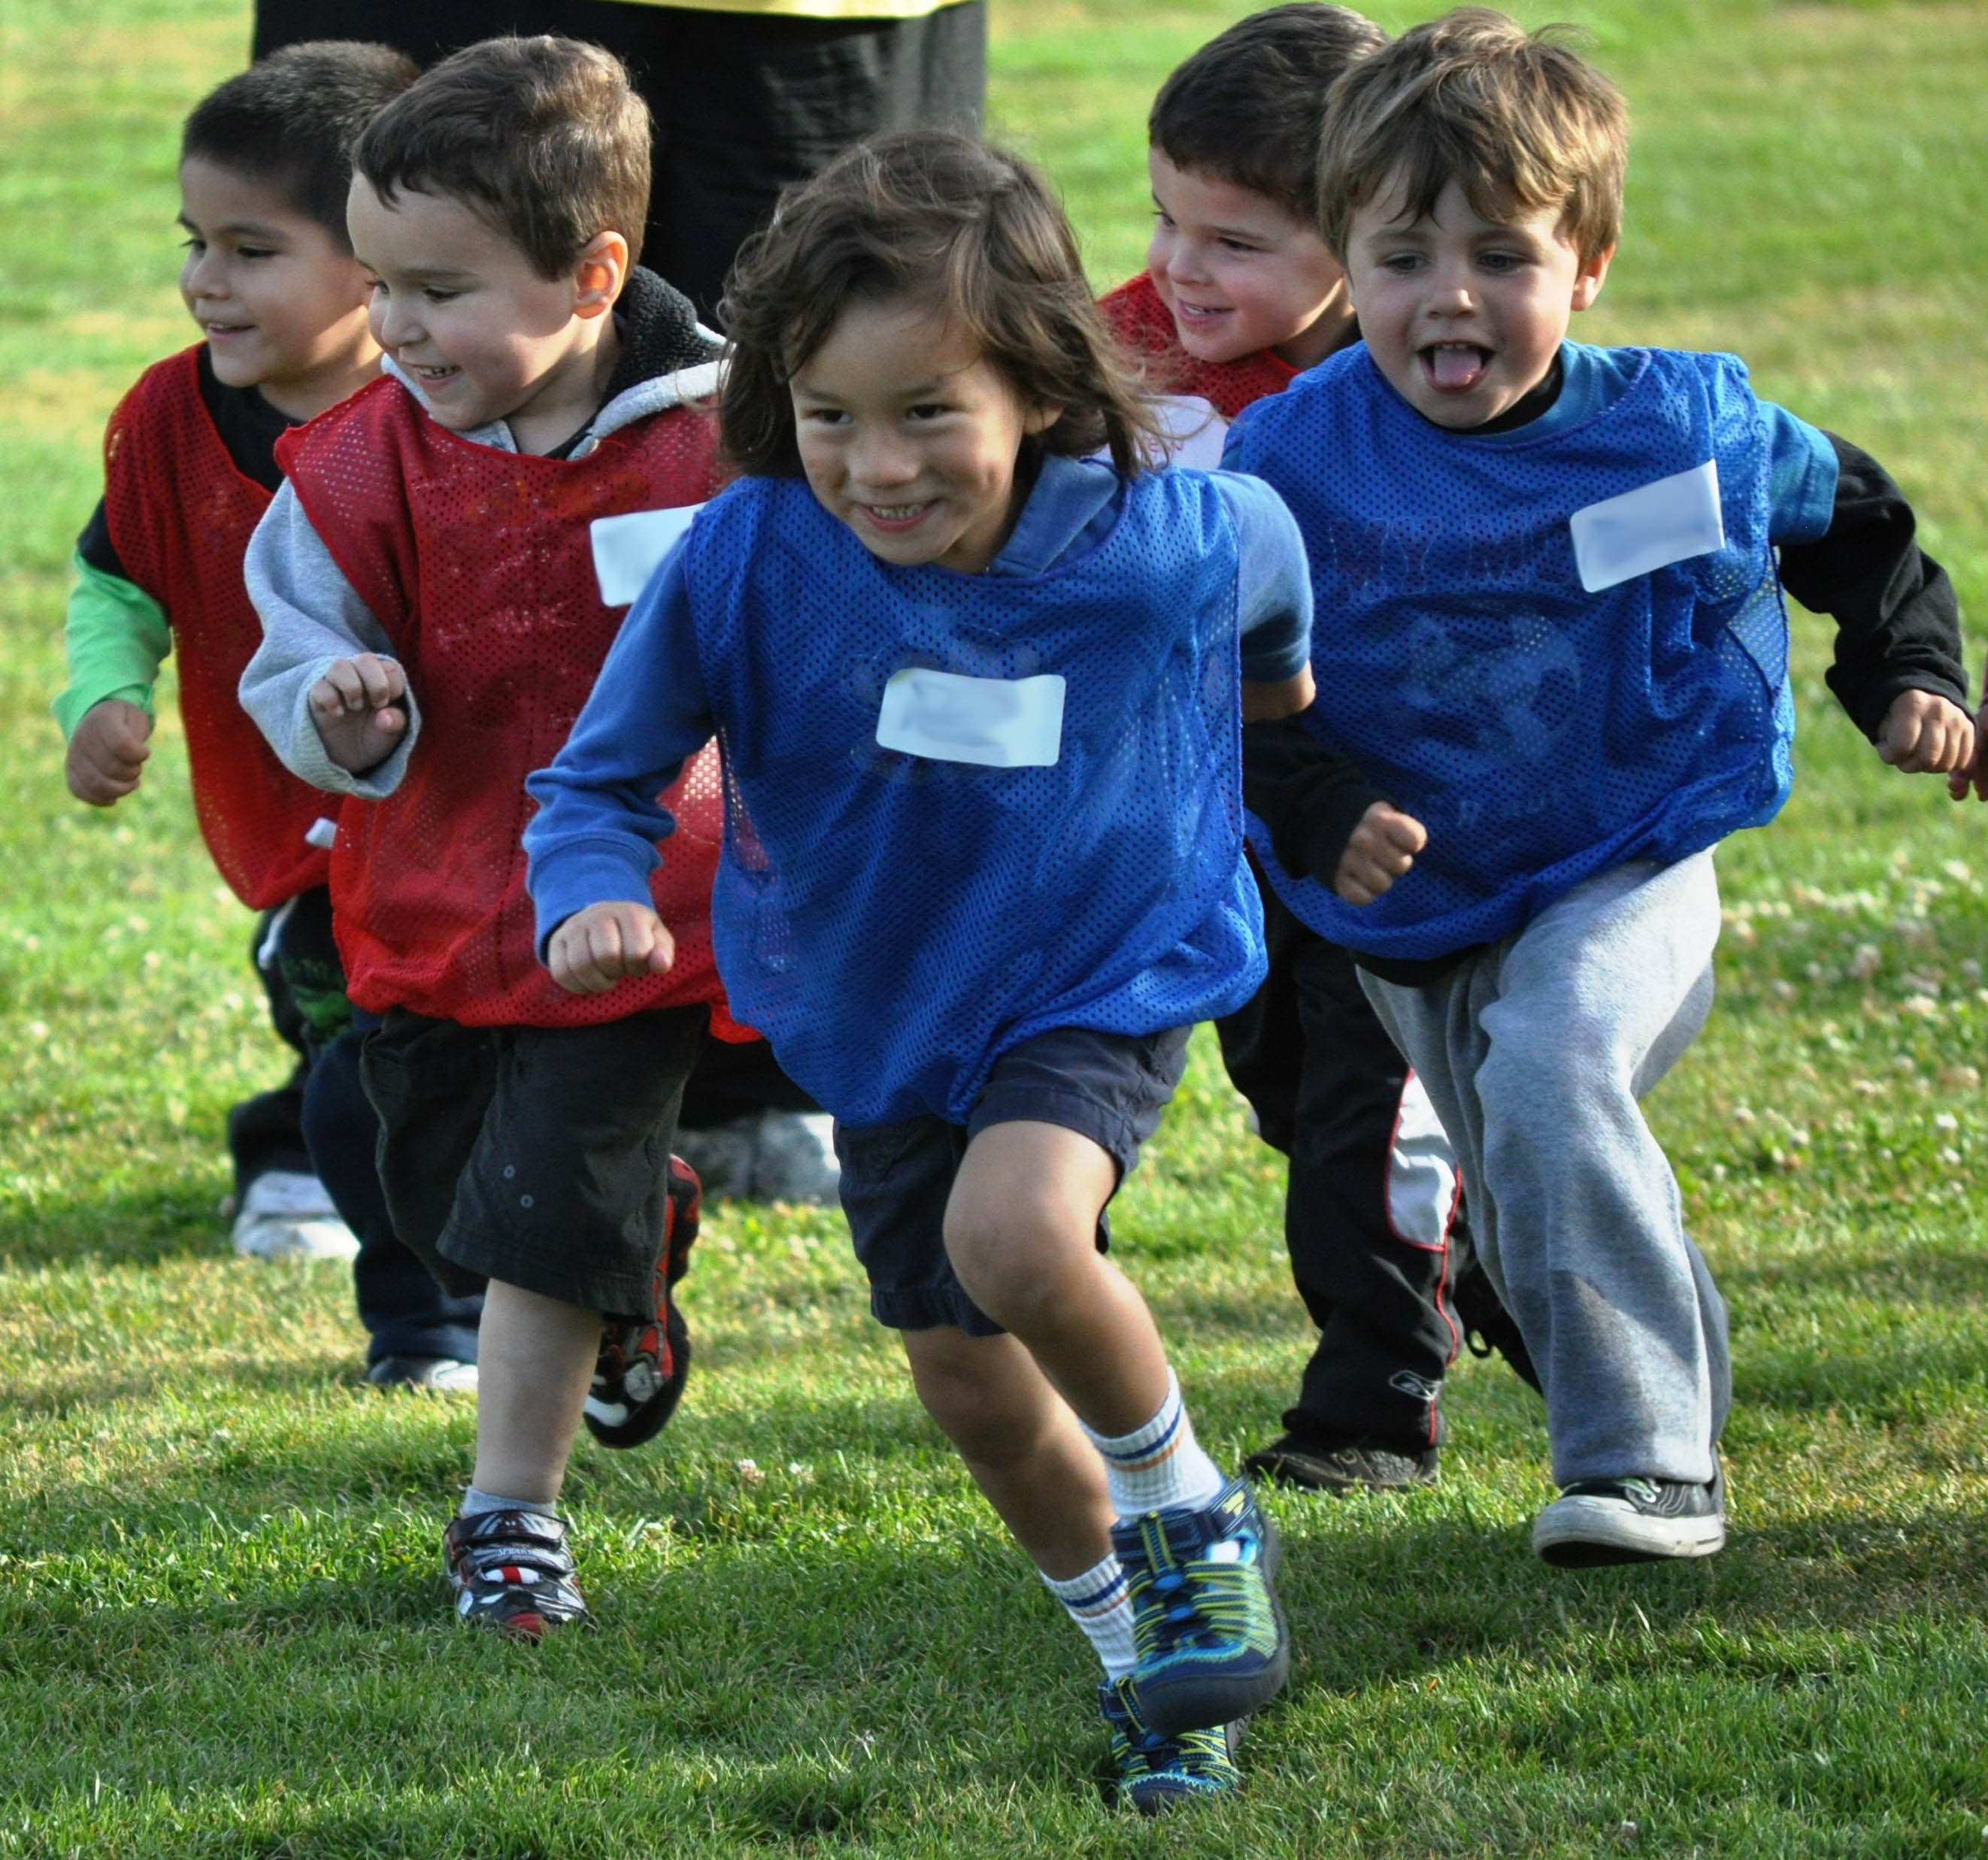 Itty Bitty youth soccer participants running during a game